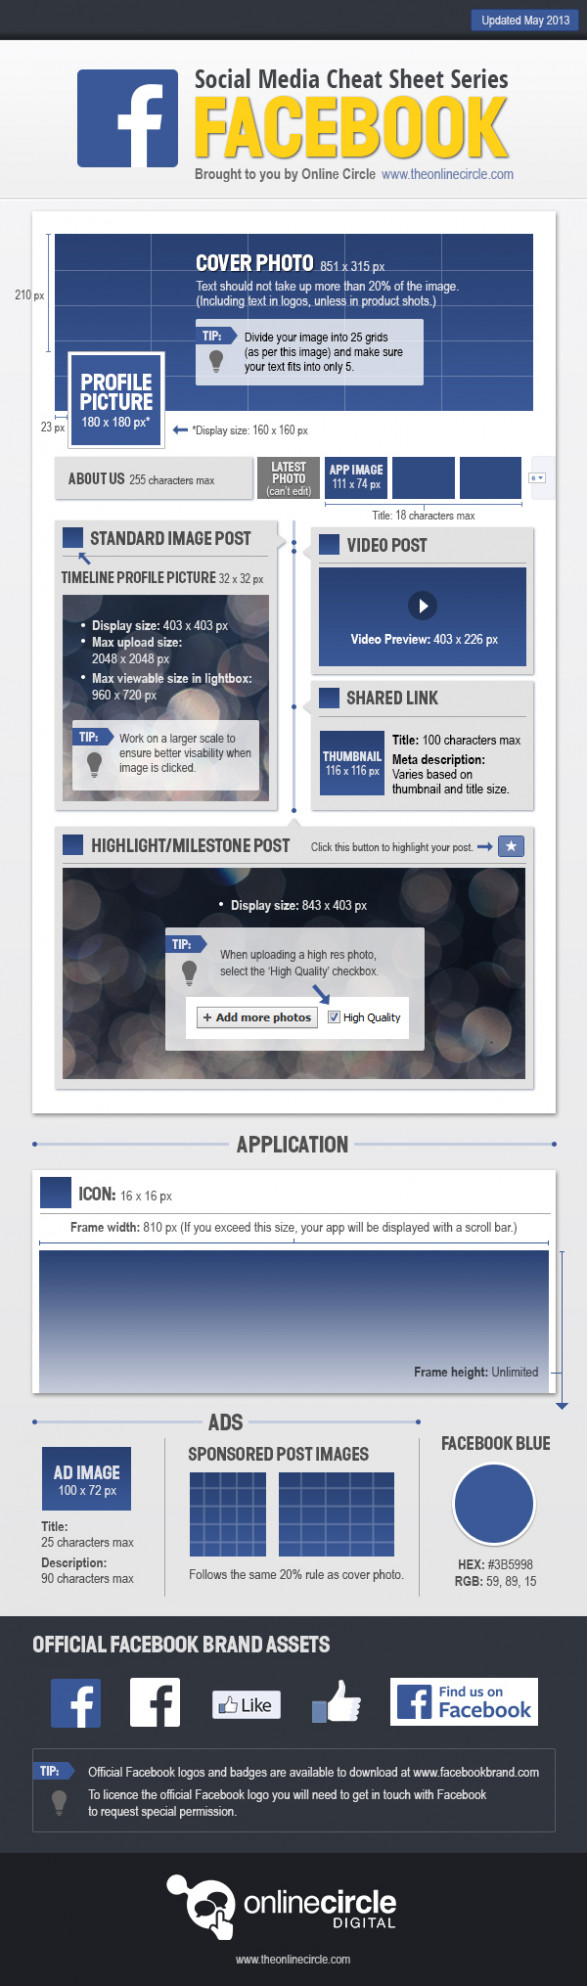 Online Circle Digital   Facebook Sizes and Dimensions Cheat Sheet 2013